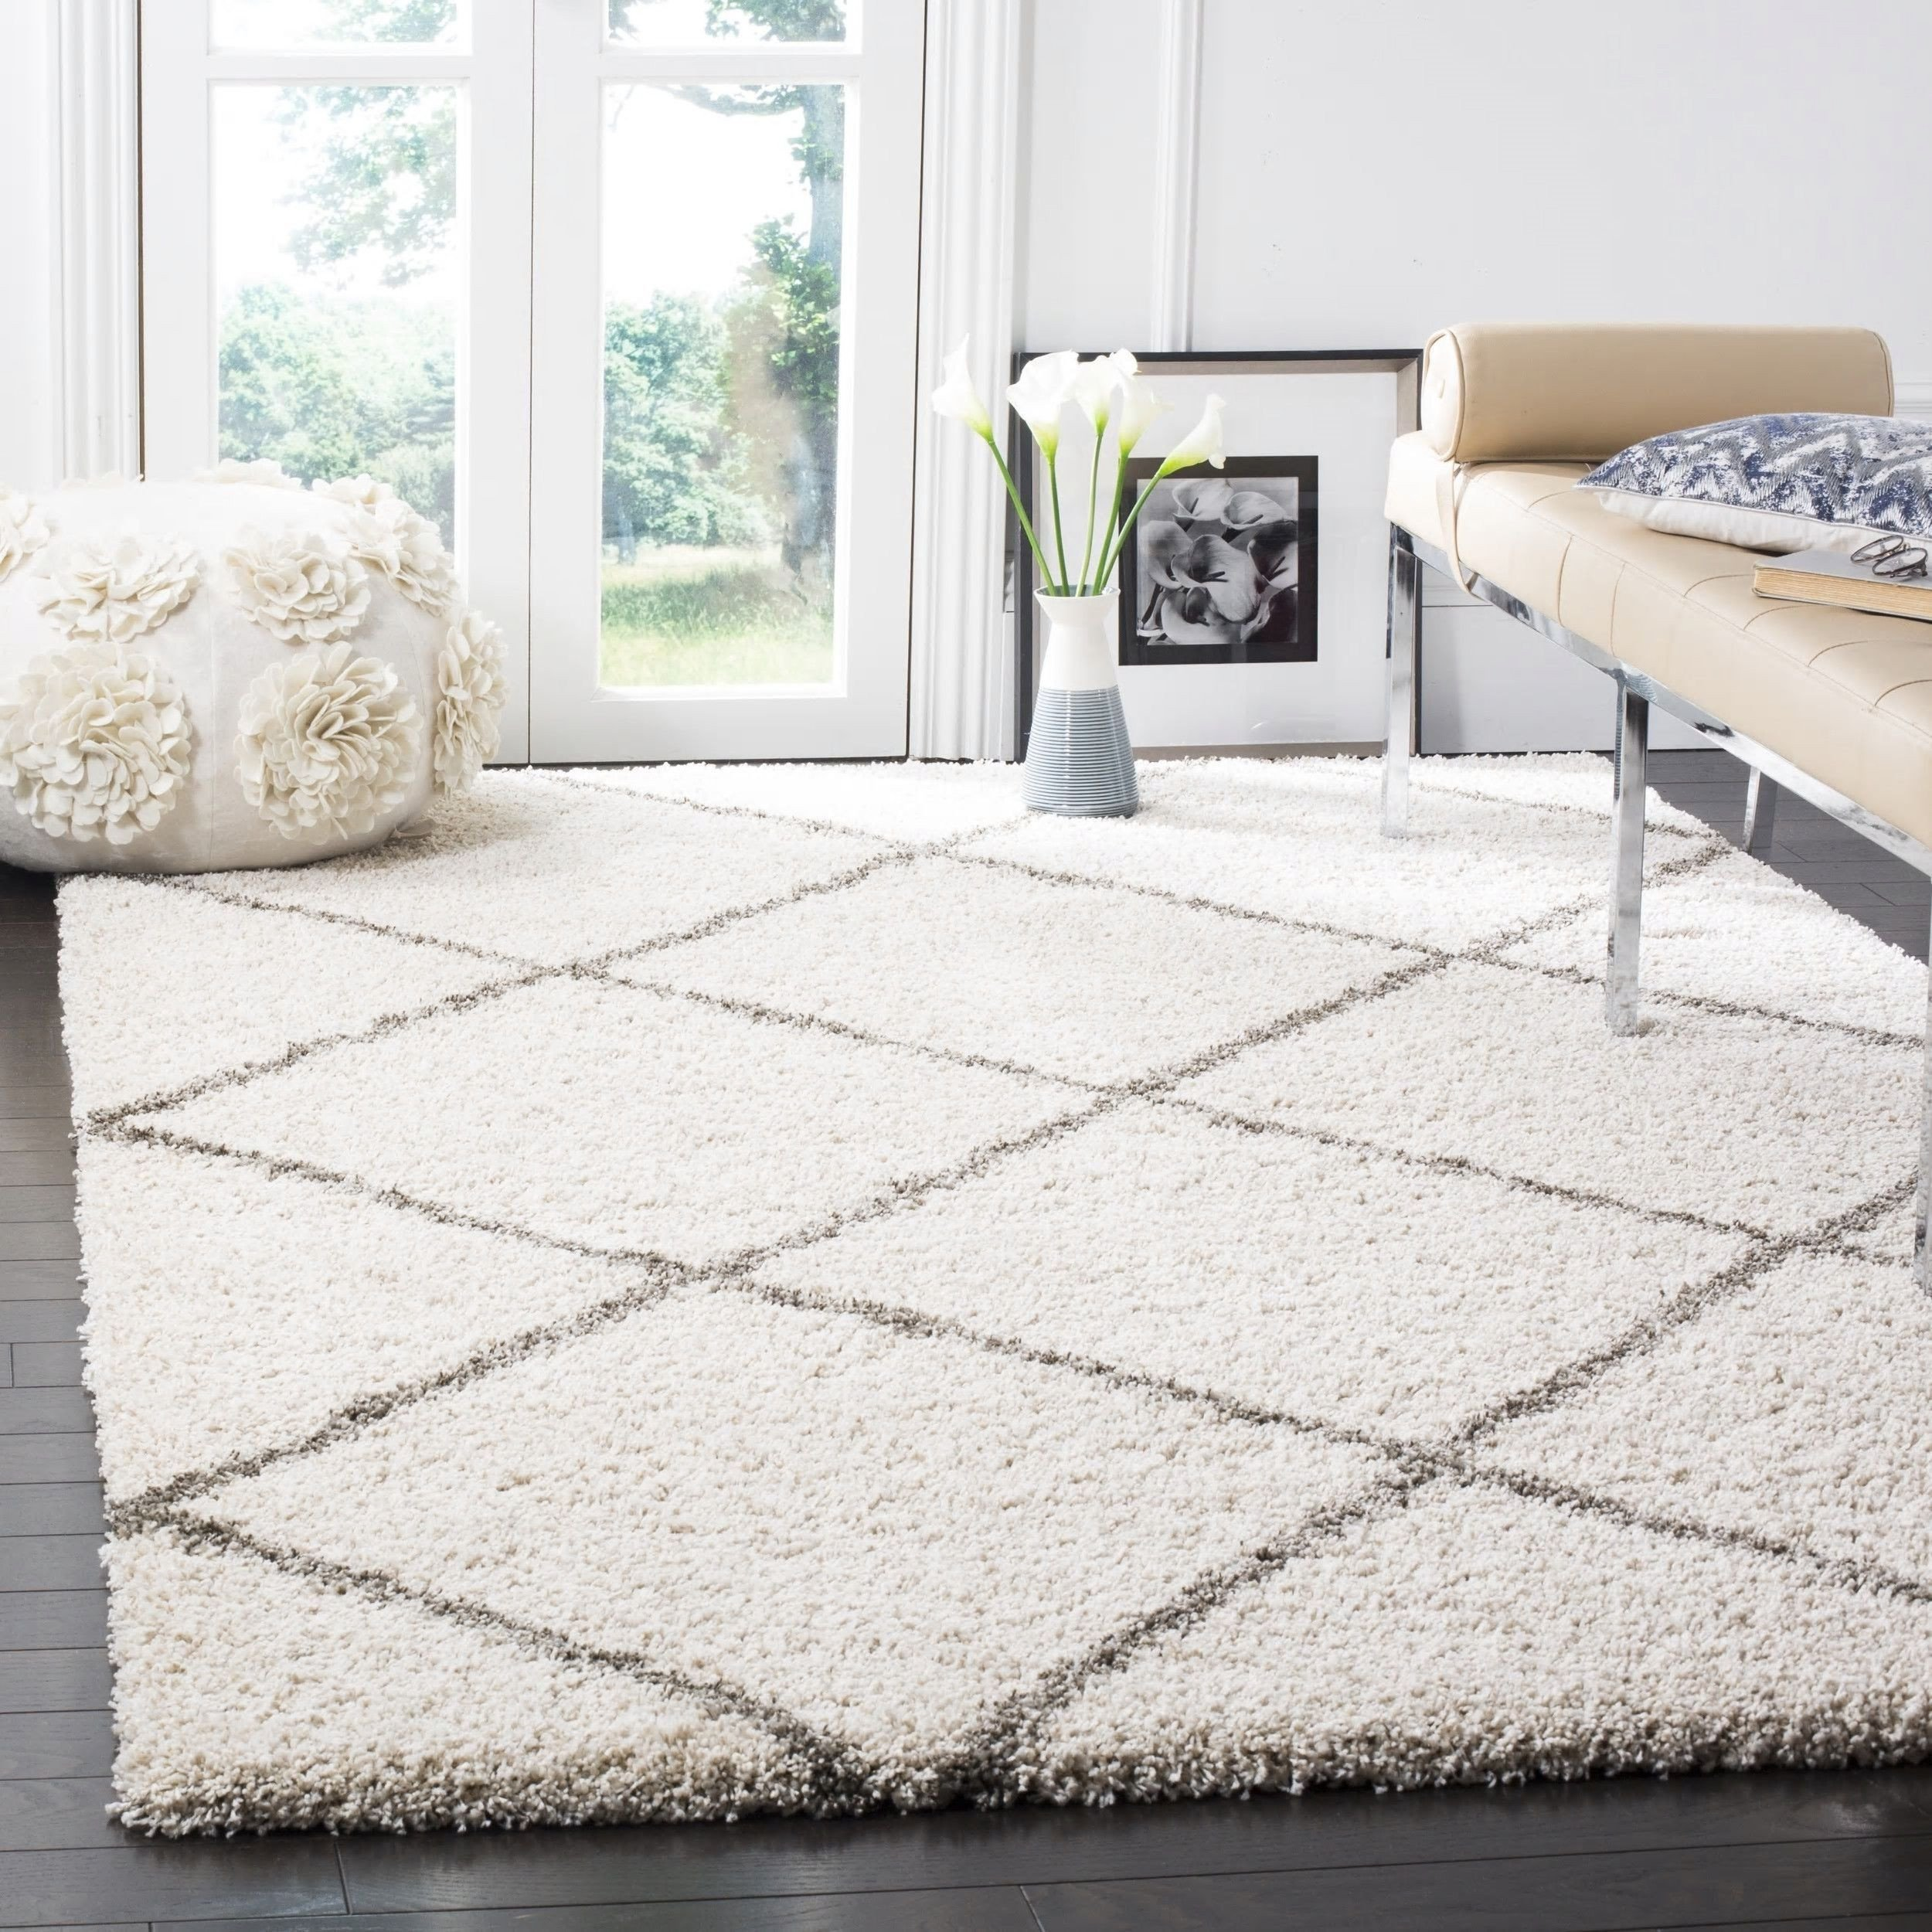 Area Rugs for Bedroom Inspirational Bohemian Trellis Ivory Shag area Rug